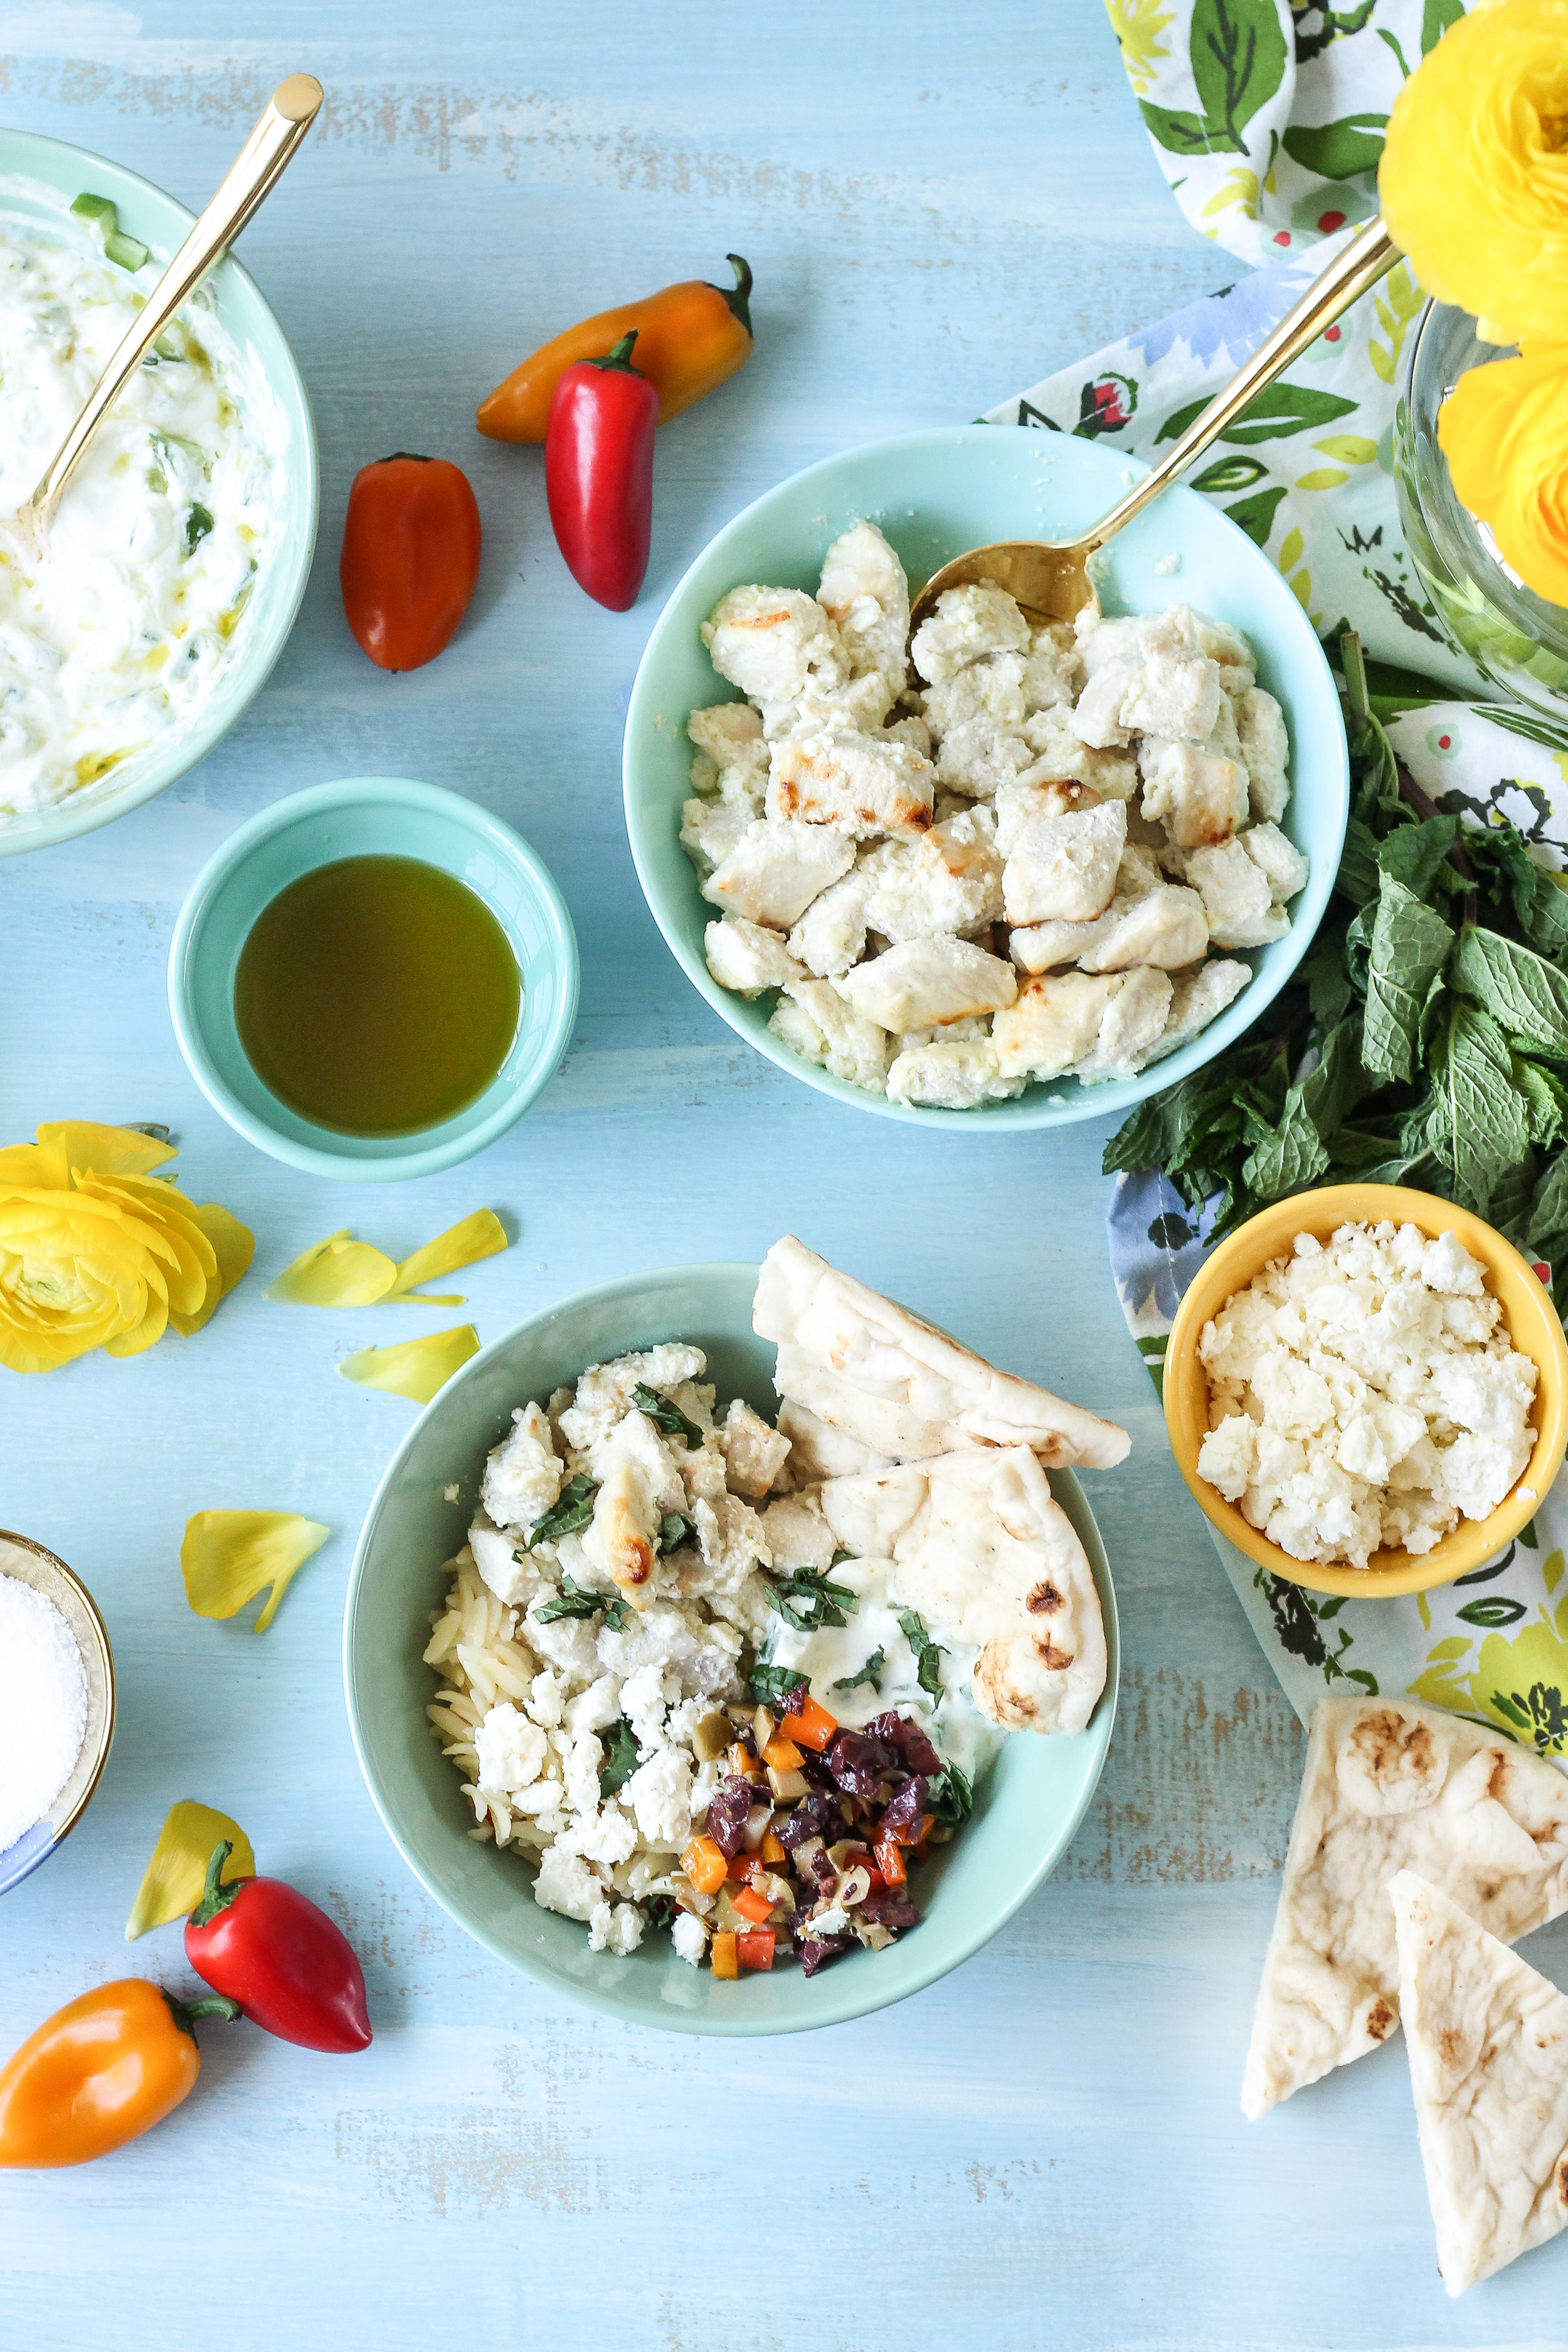 These fresh & simple Lemon & Yogurt Greek Chicken Bowls make the perfect weeknight dinner!  Find the recipe on WWW.PEDANTICFOODIE.COM.